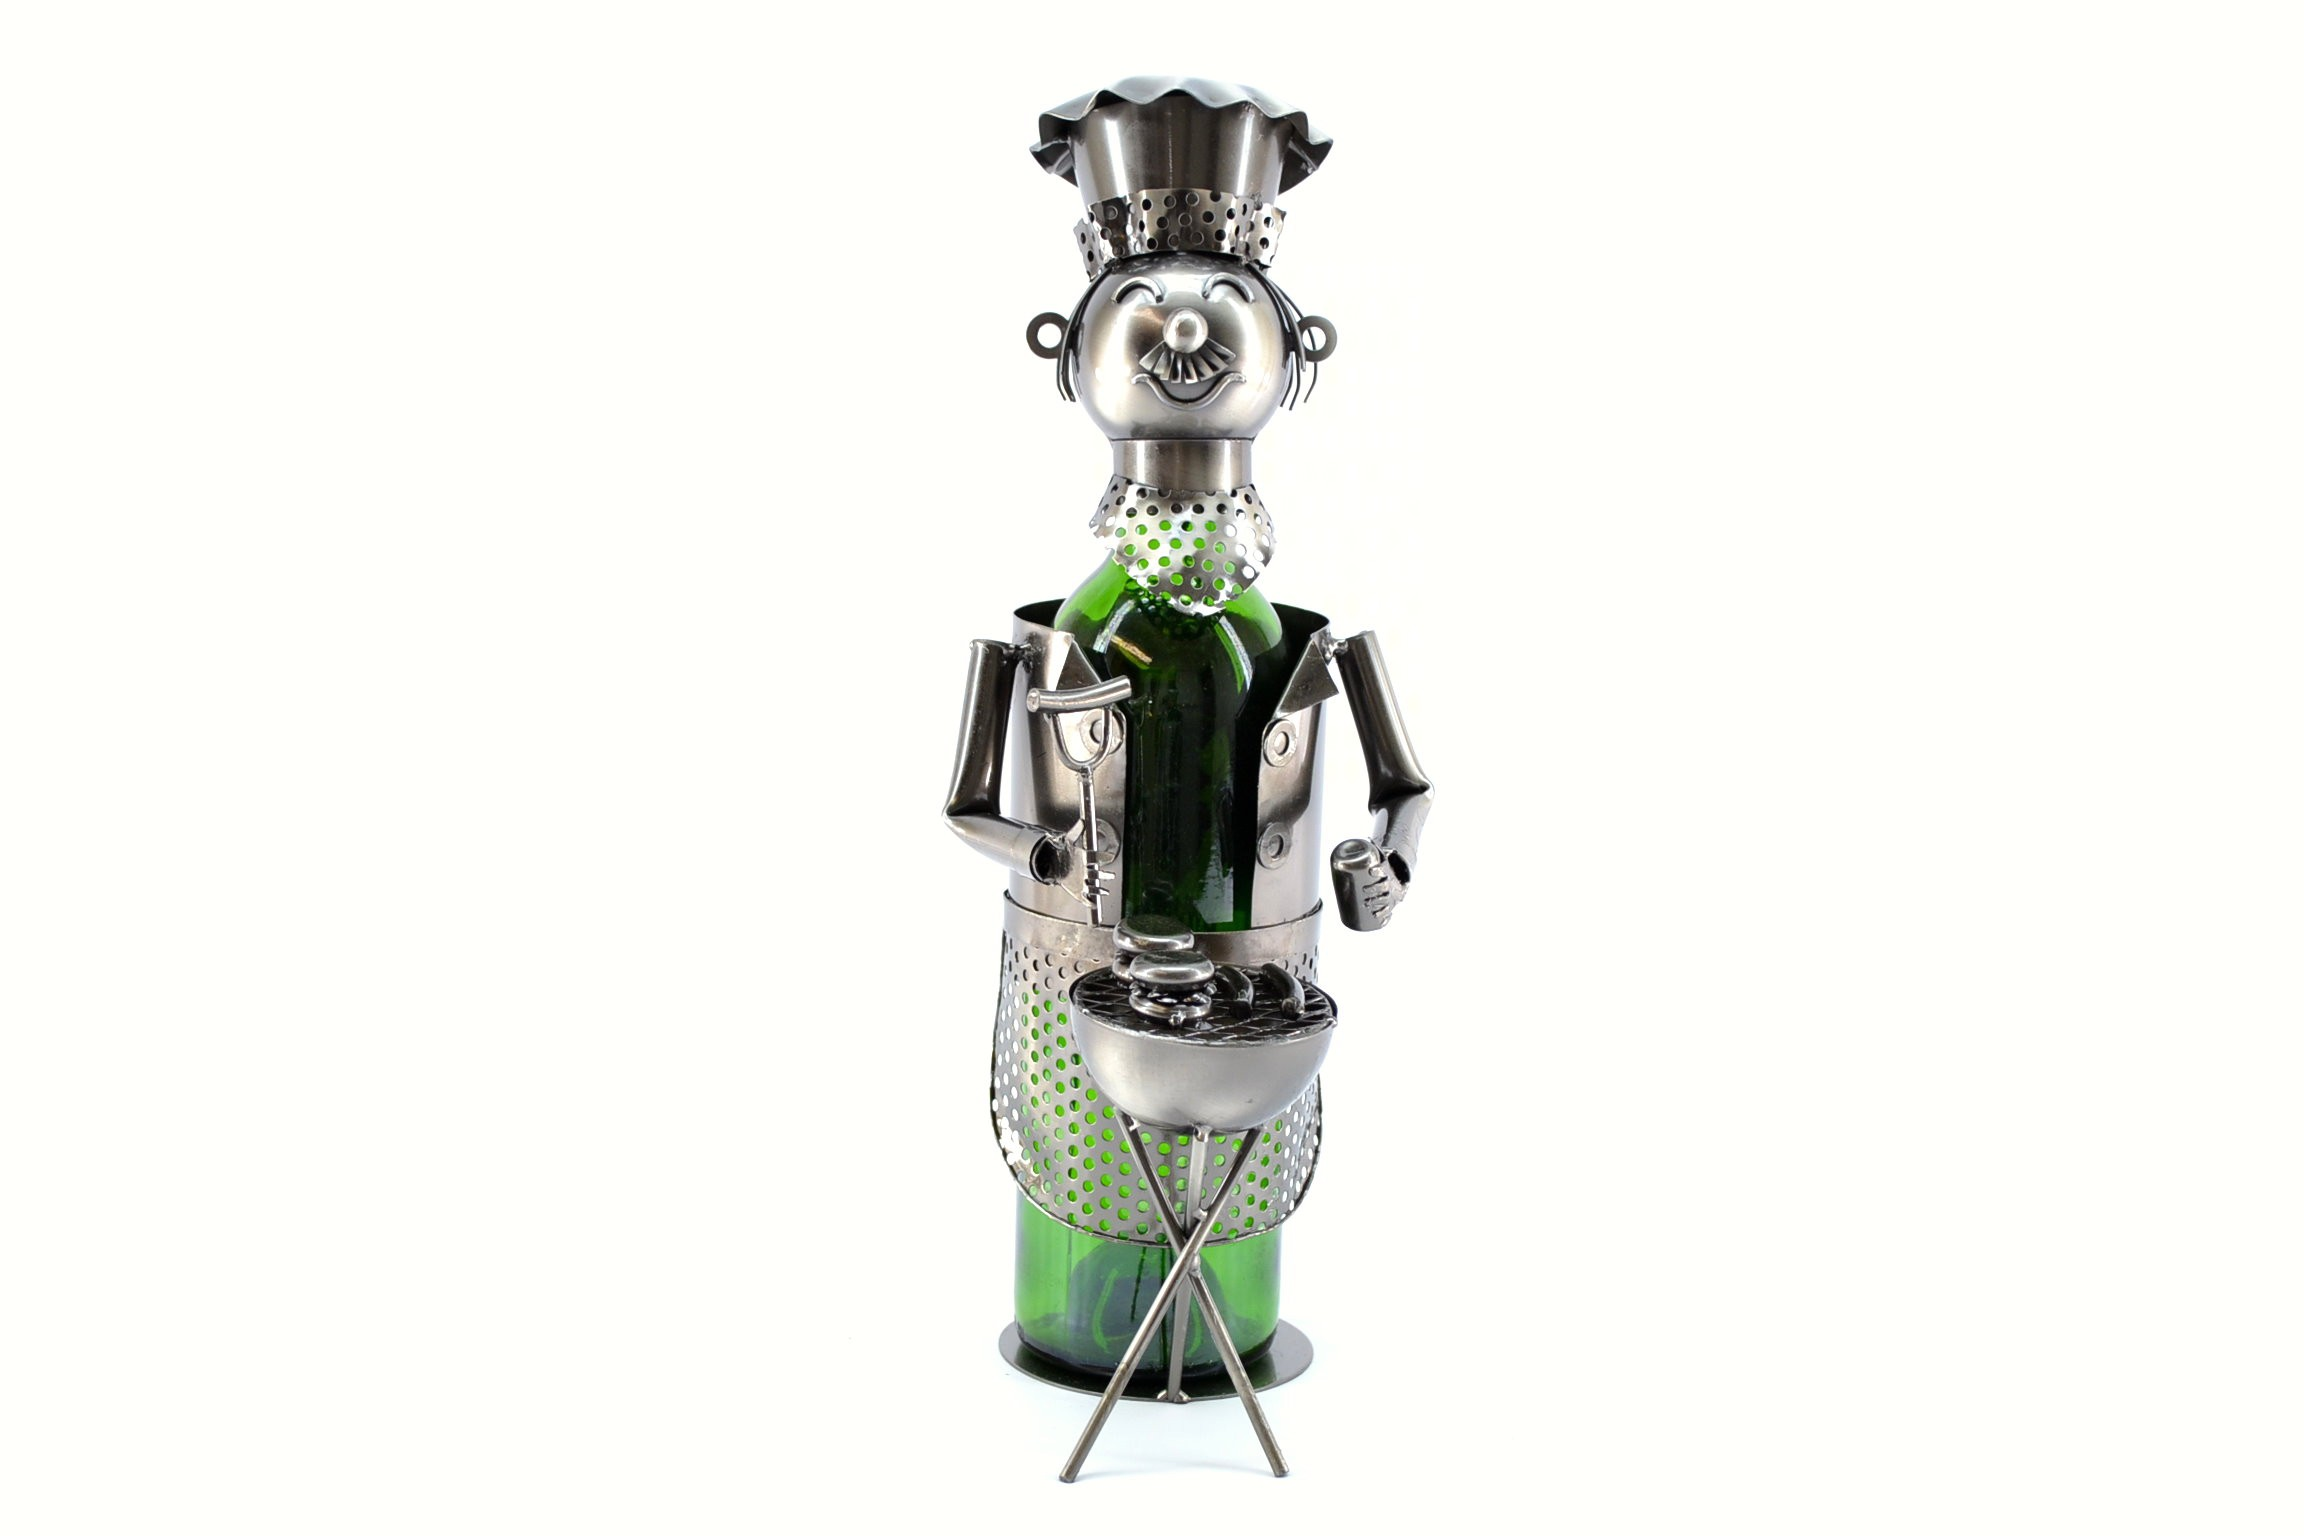 BBQ Chef Wine Bottle Holder